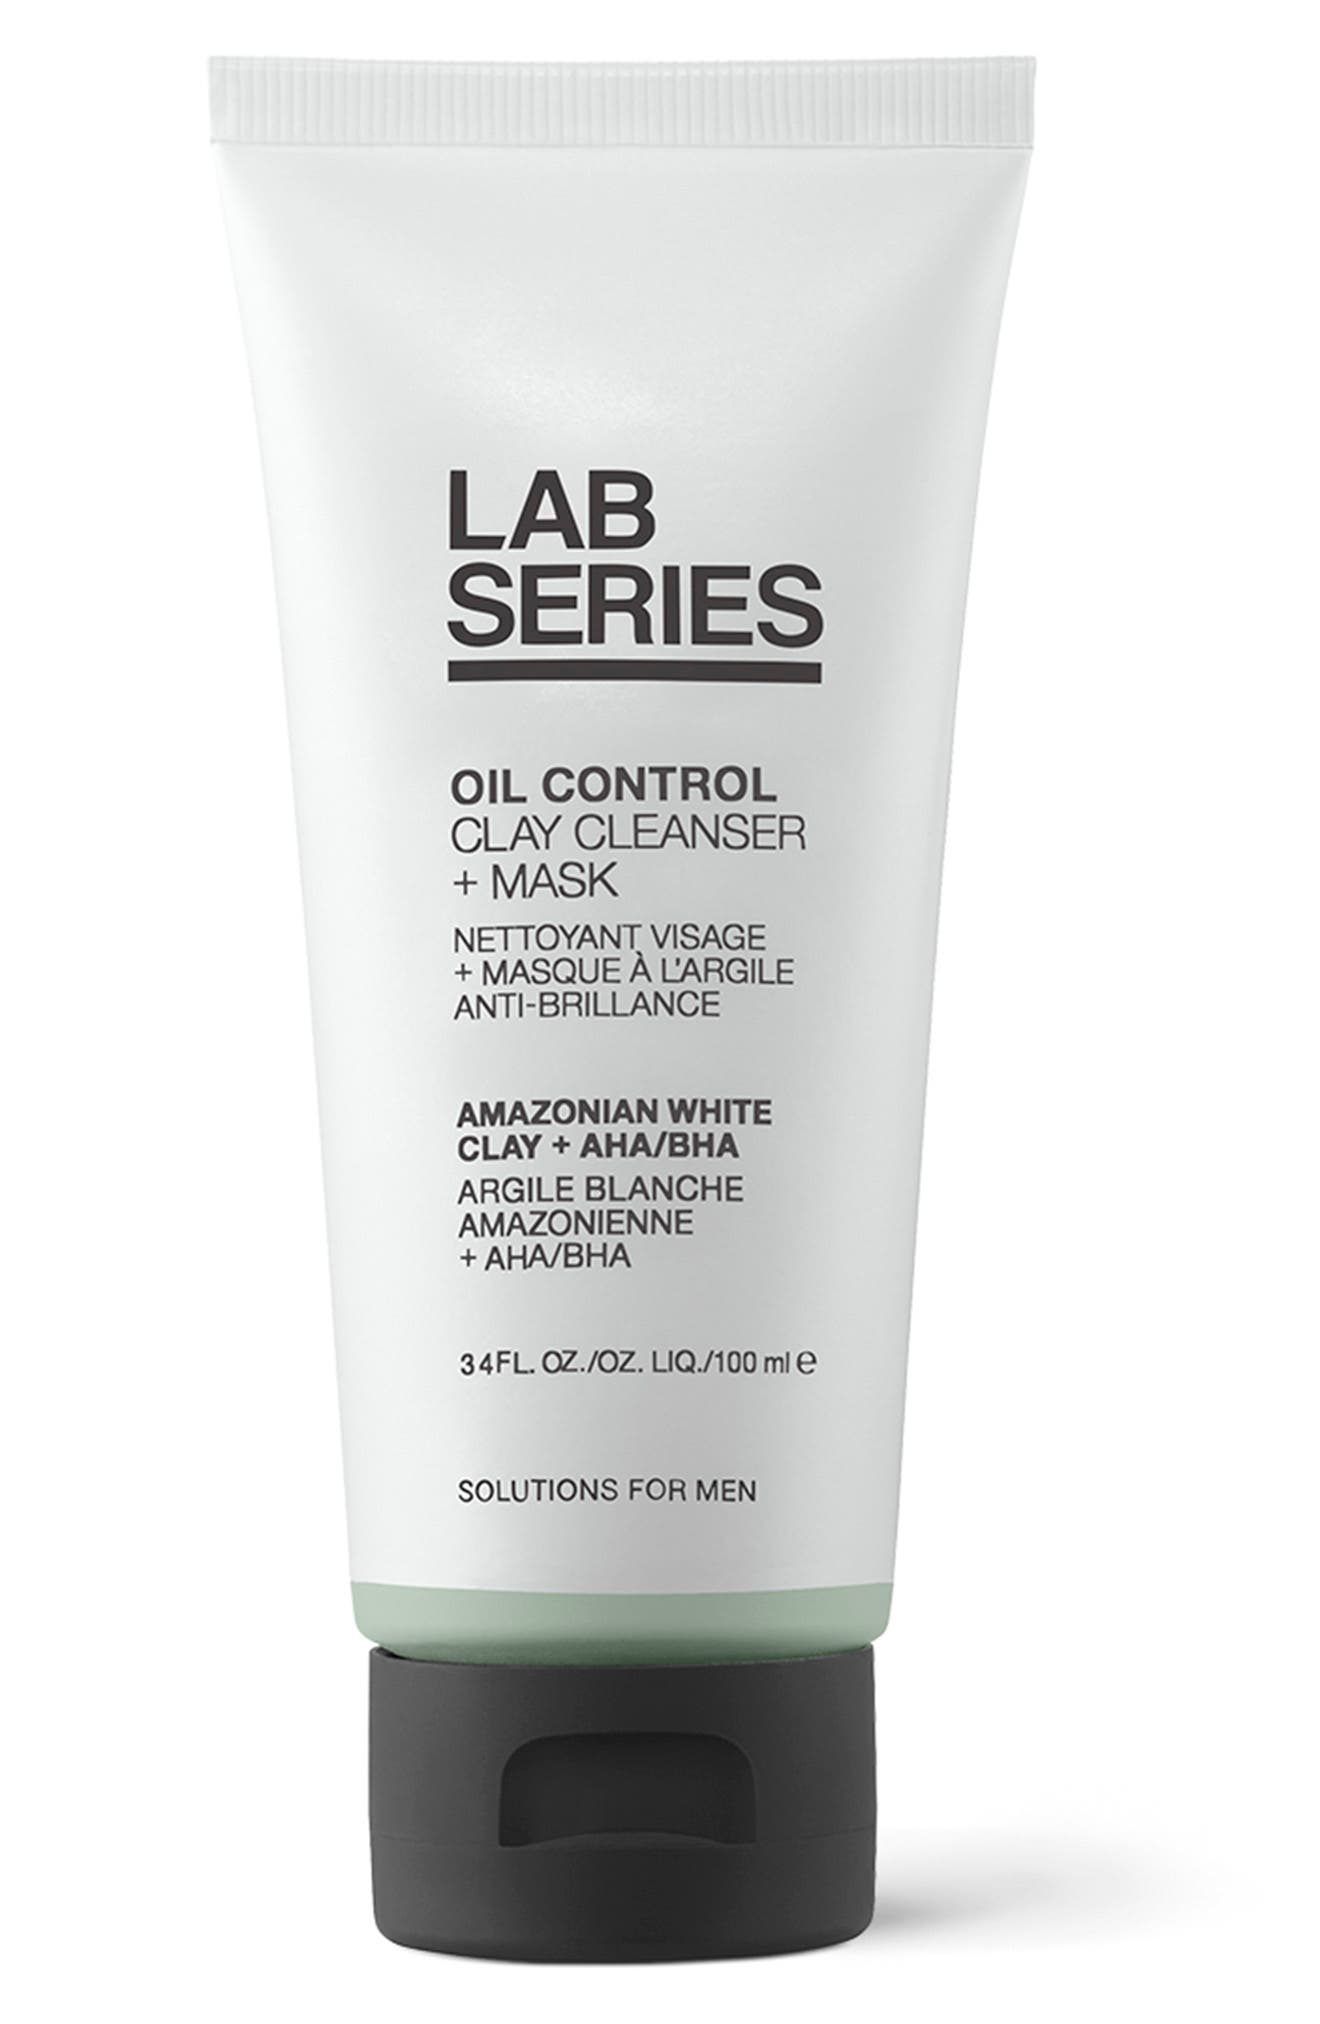 Oil Control Clay Cleanser + Mask